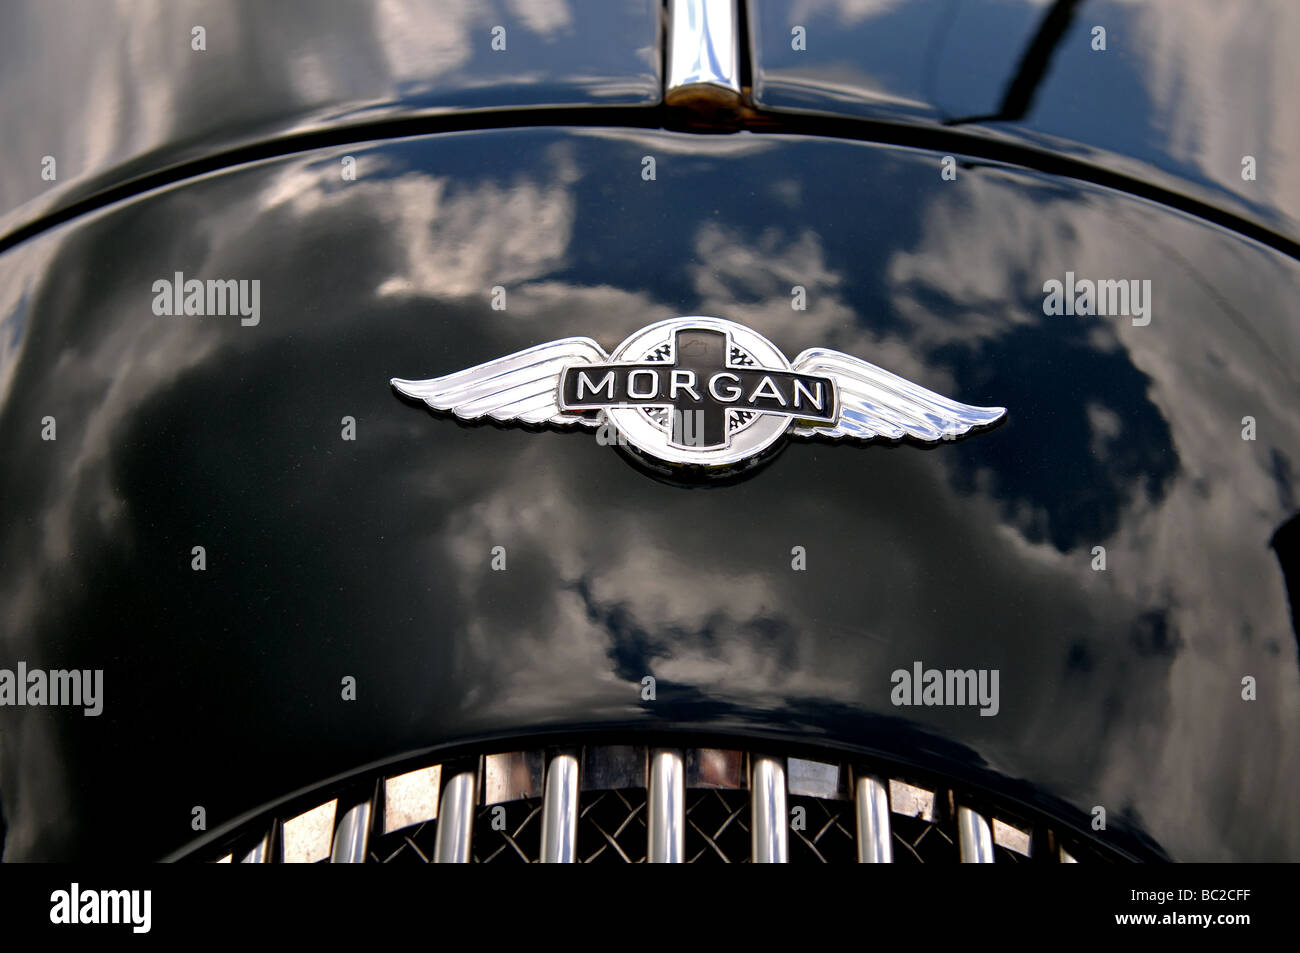 British Car Companies Stock Photos & British Car Companies Stock ...